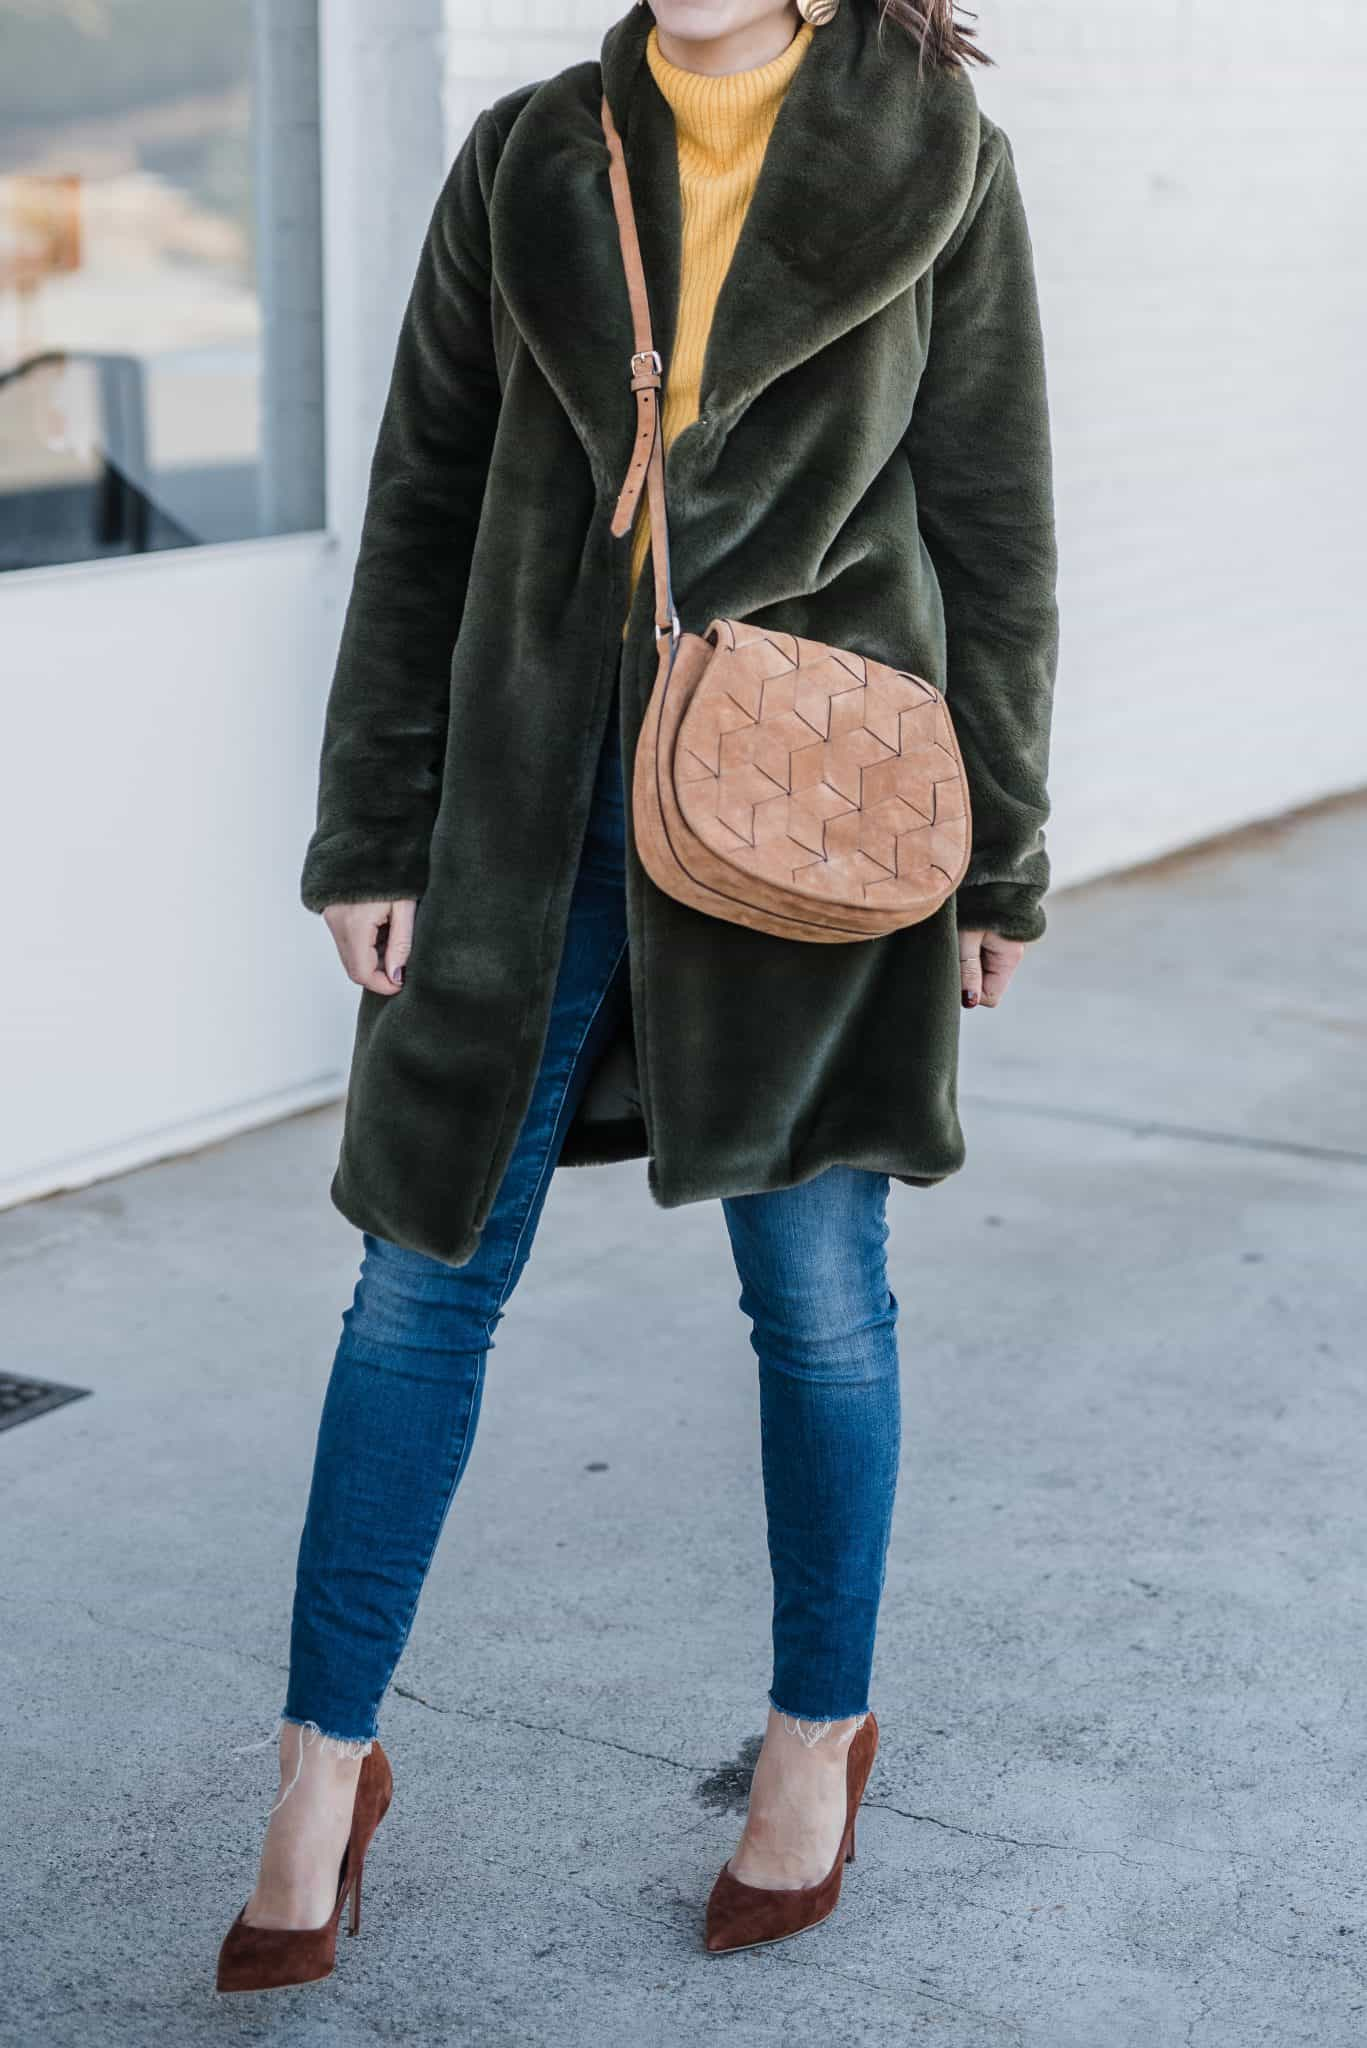 Leith Faux Fur Coat  • Nordstrom Sweater (under $50) • Steve Madden Heels • Jeans • Welden Bag